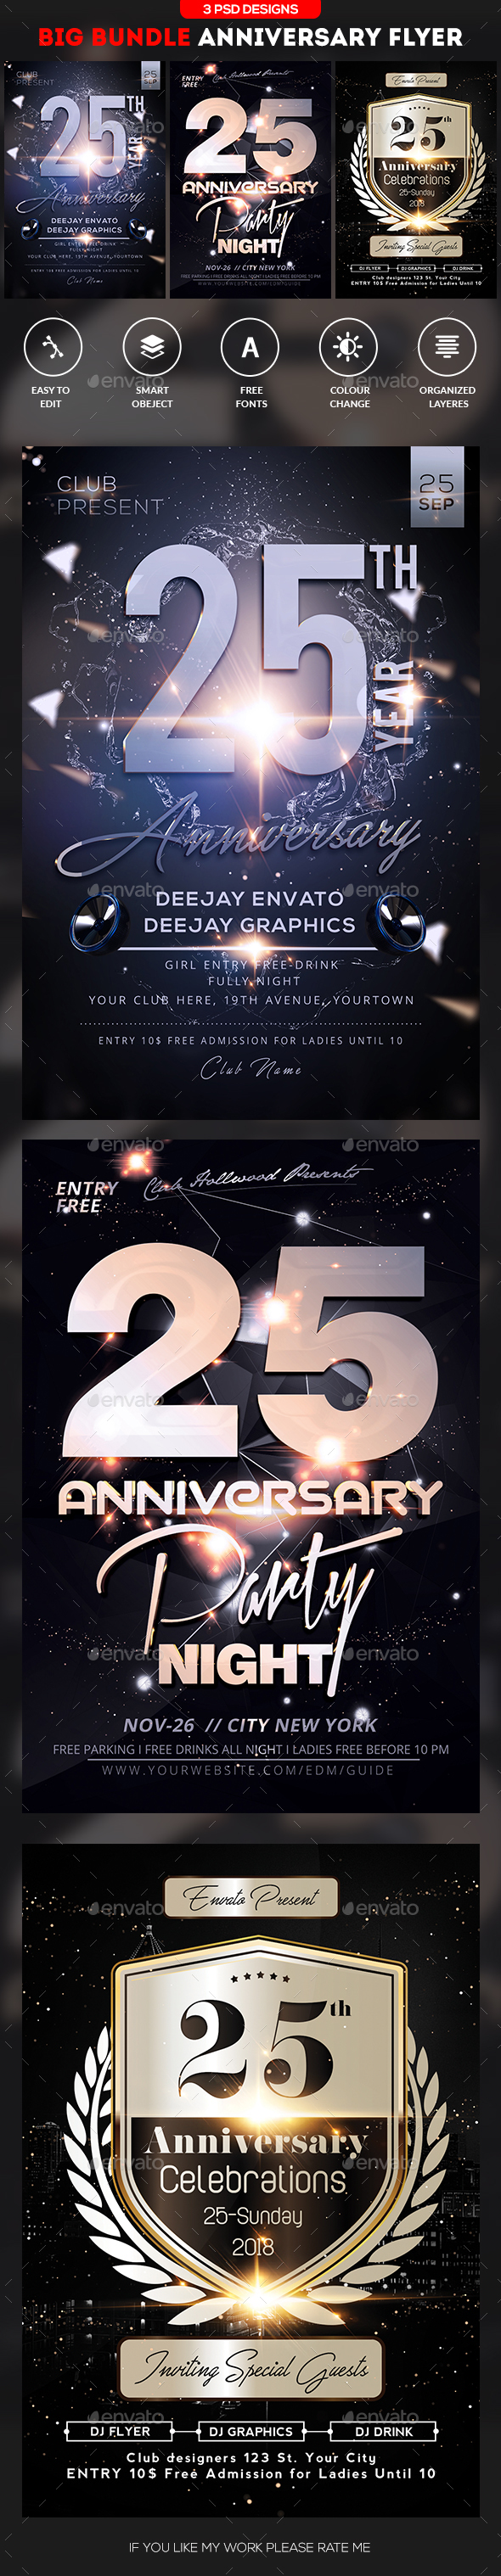 Anniversary Flyer Bundle - Flyers Print Templates